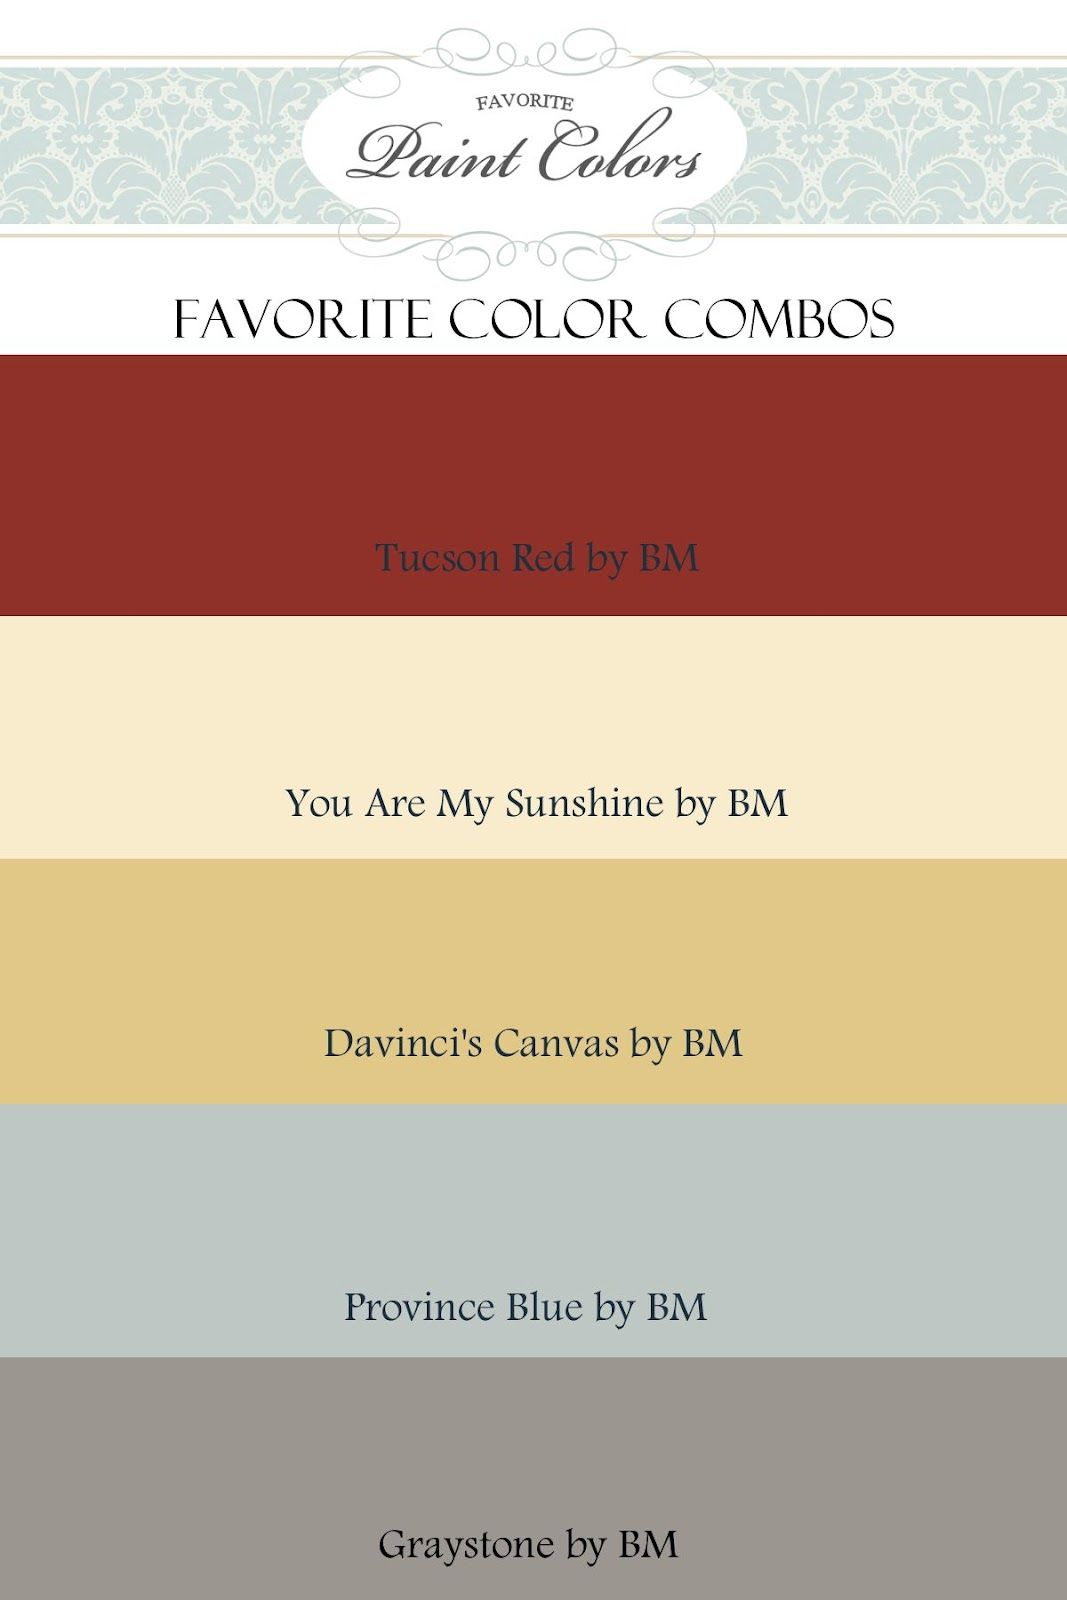 favorite paint colors energizing classroom items pinterest